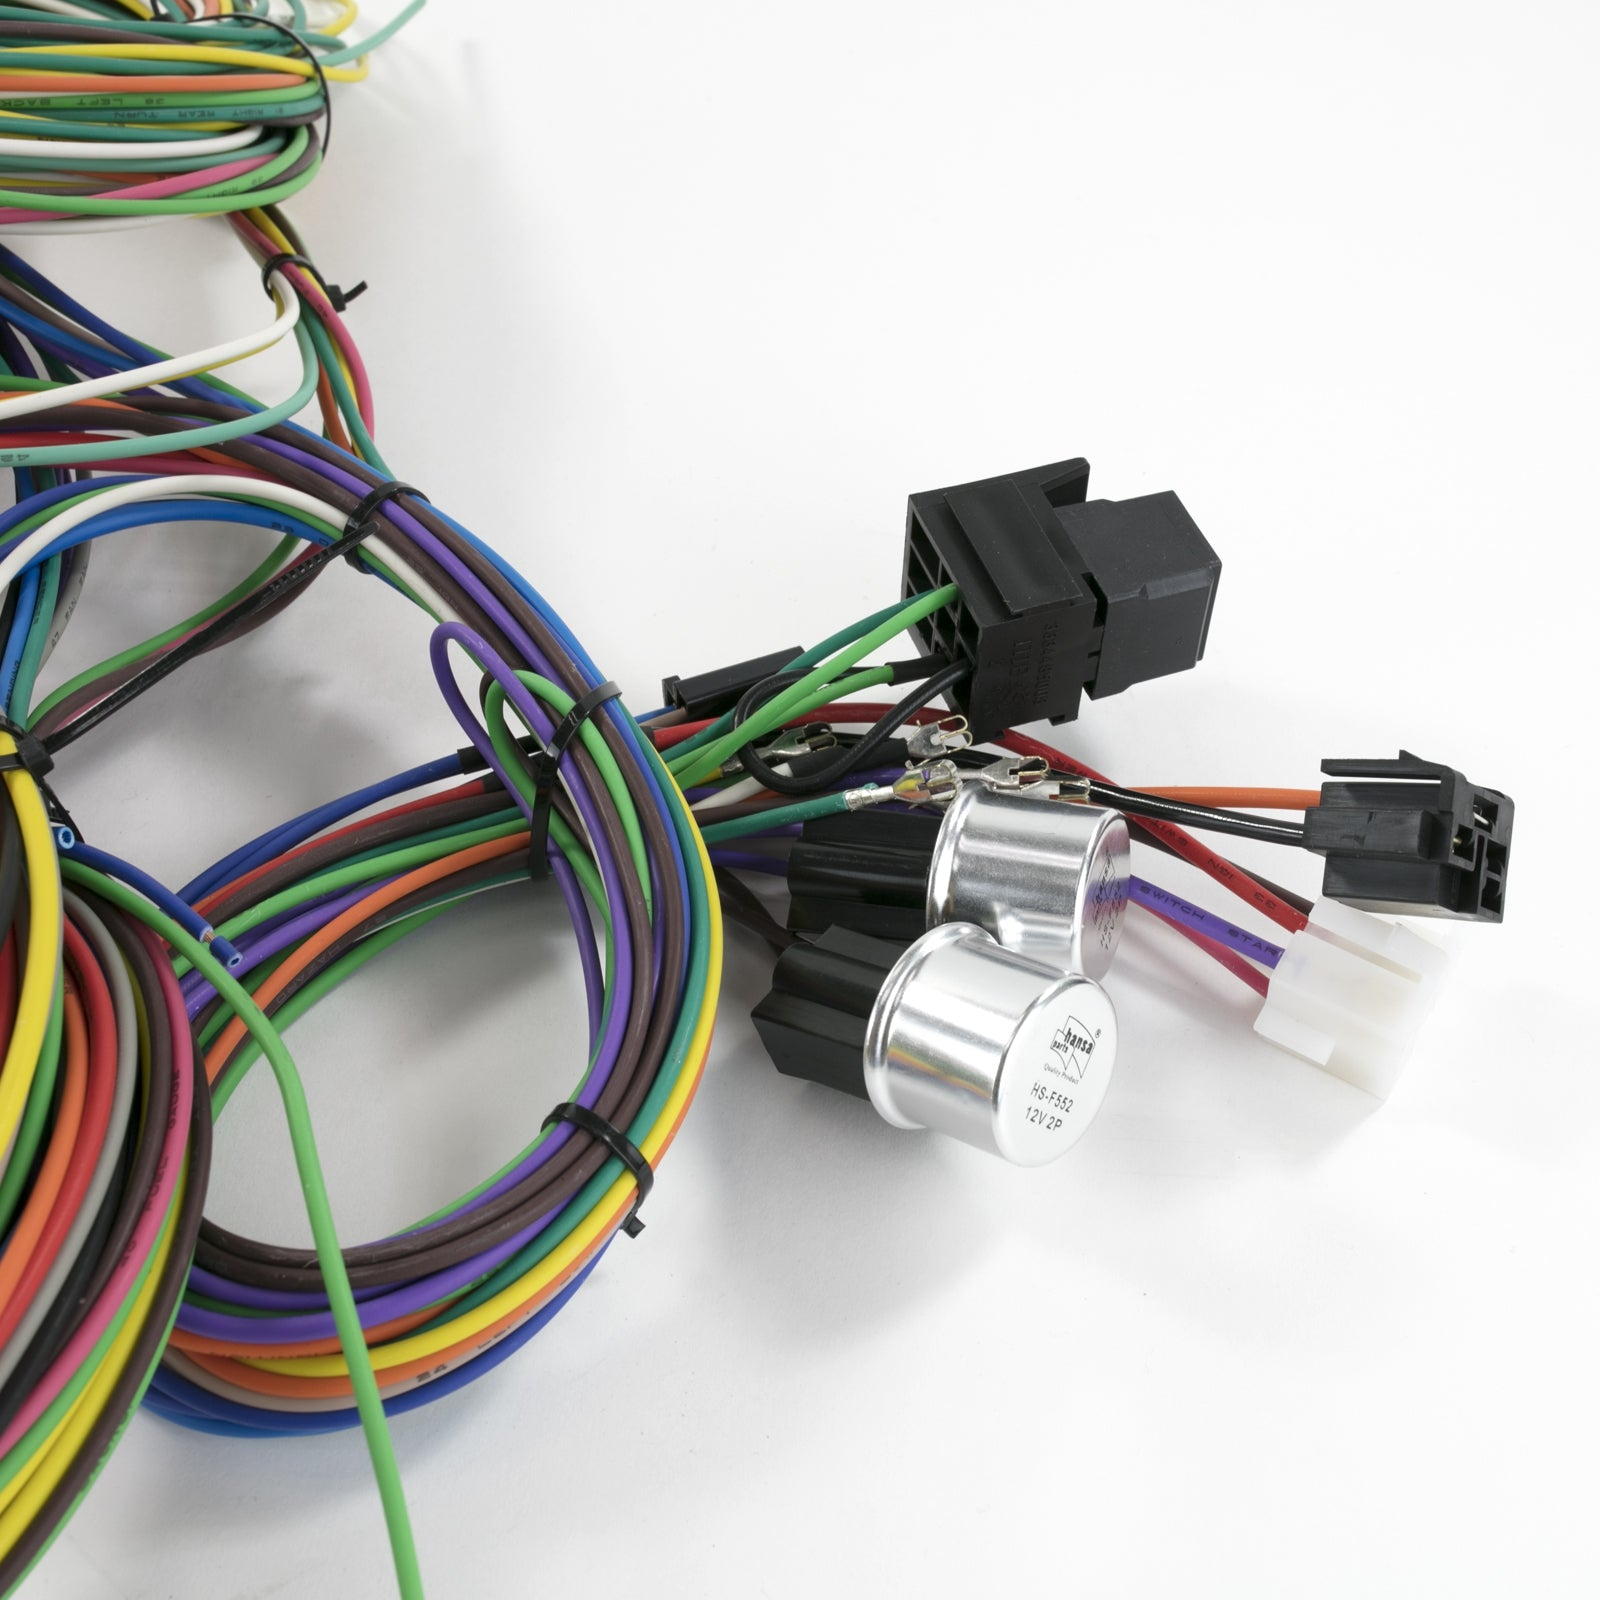 280zx Wiring Harness | Wiring Diagram on